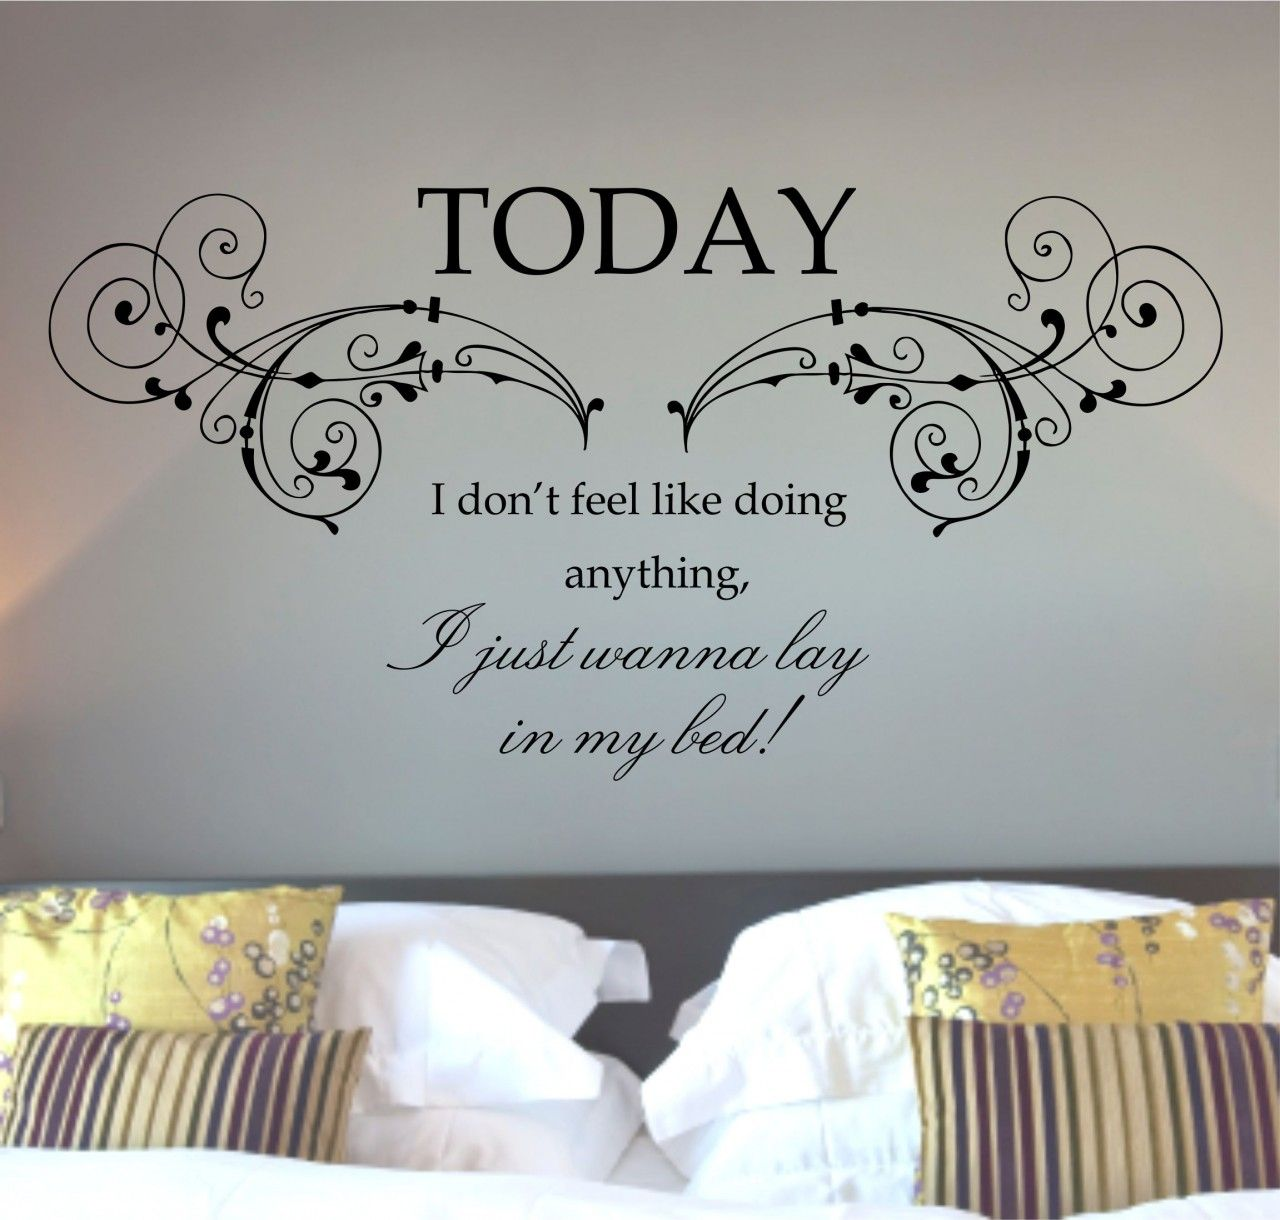 Cozy bedroom using unusual bedroom wall art with words of wisdom above wide bed wall stickers